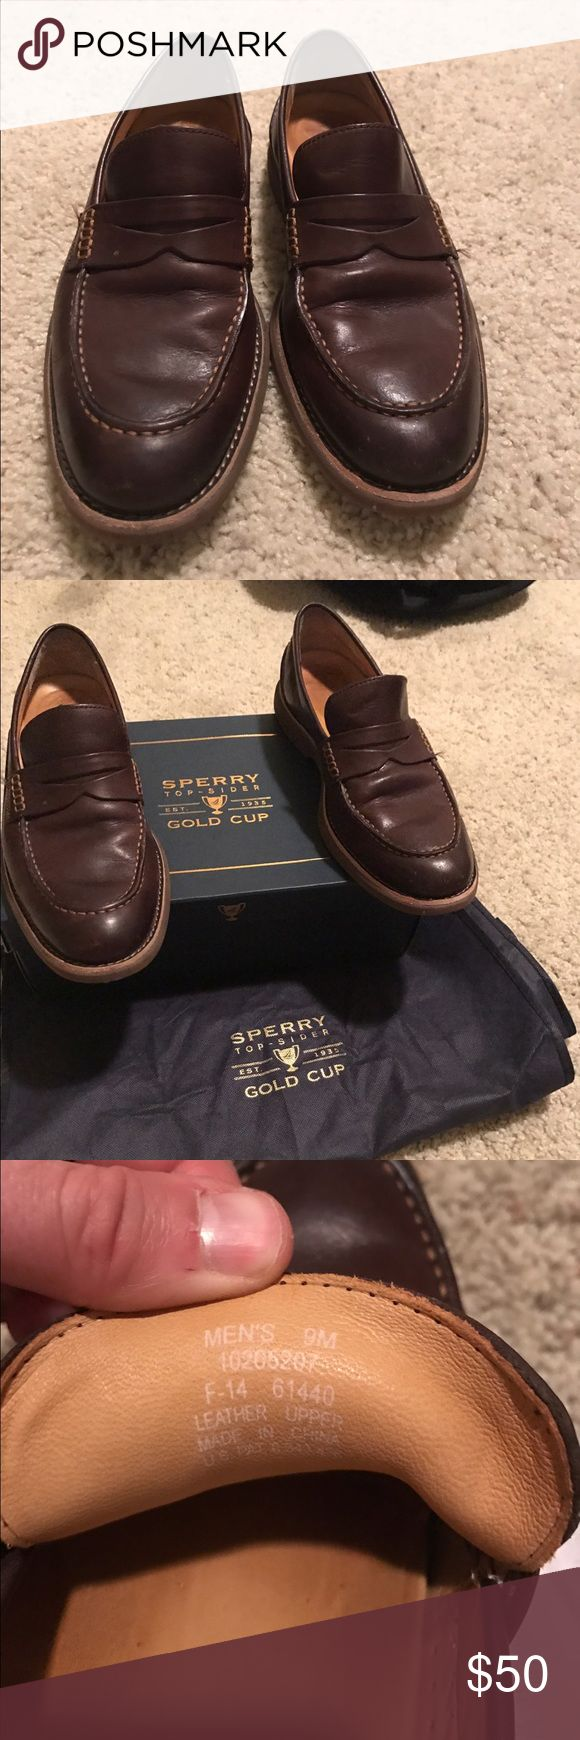 Sperry loafers Chocolate brown Sperry loafers. Great condition. Size 9 Sperry Shoes Loafers & Slip-Ons